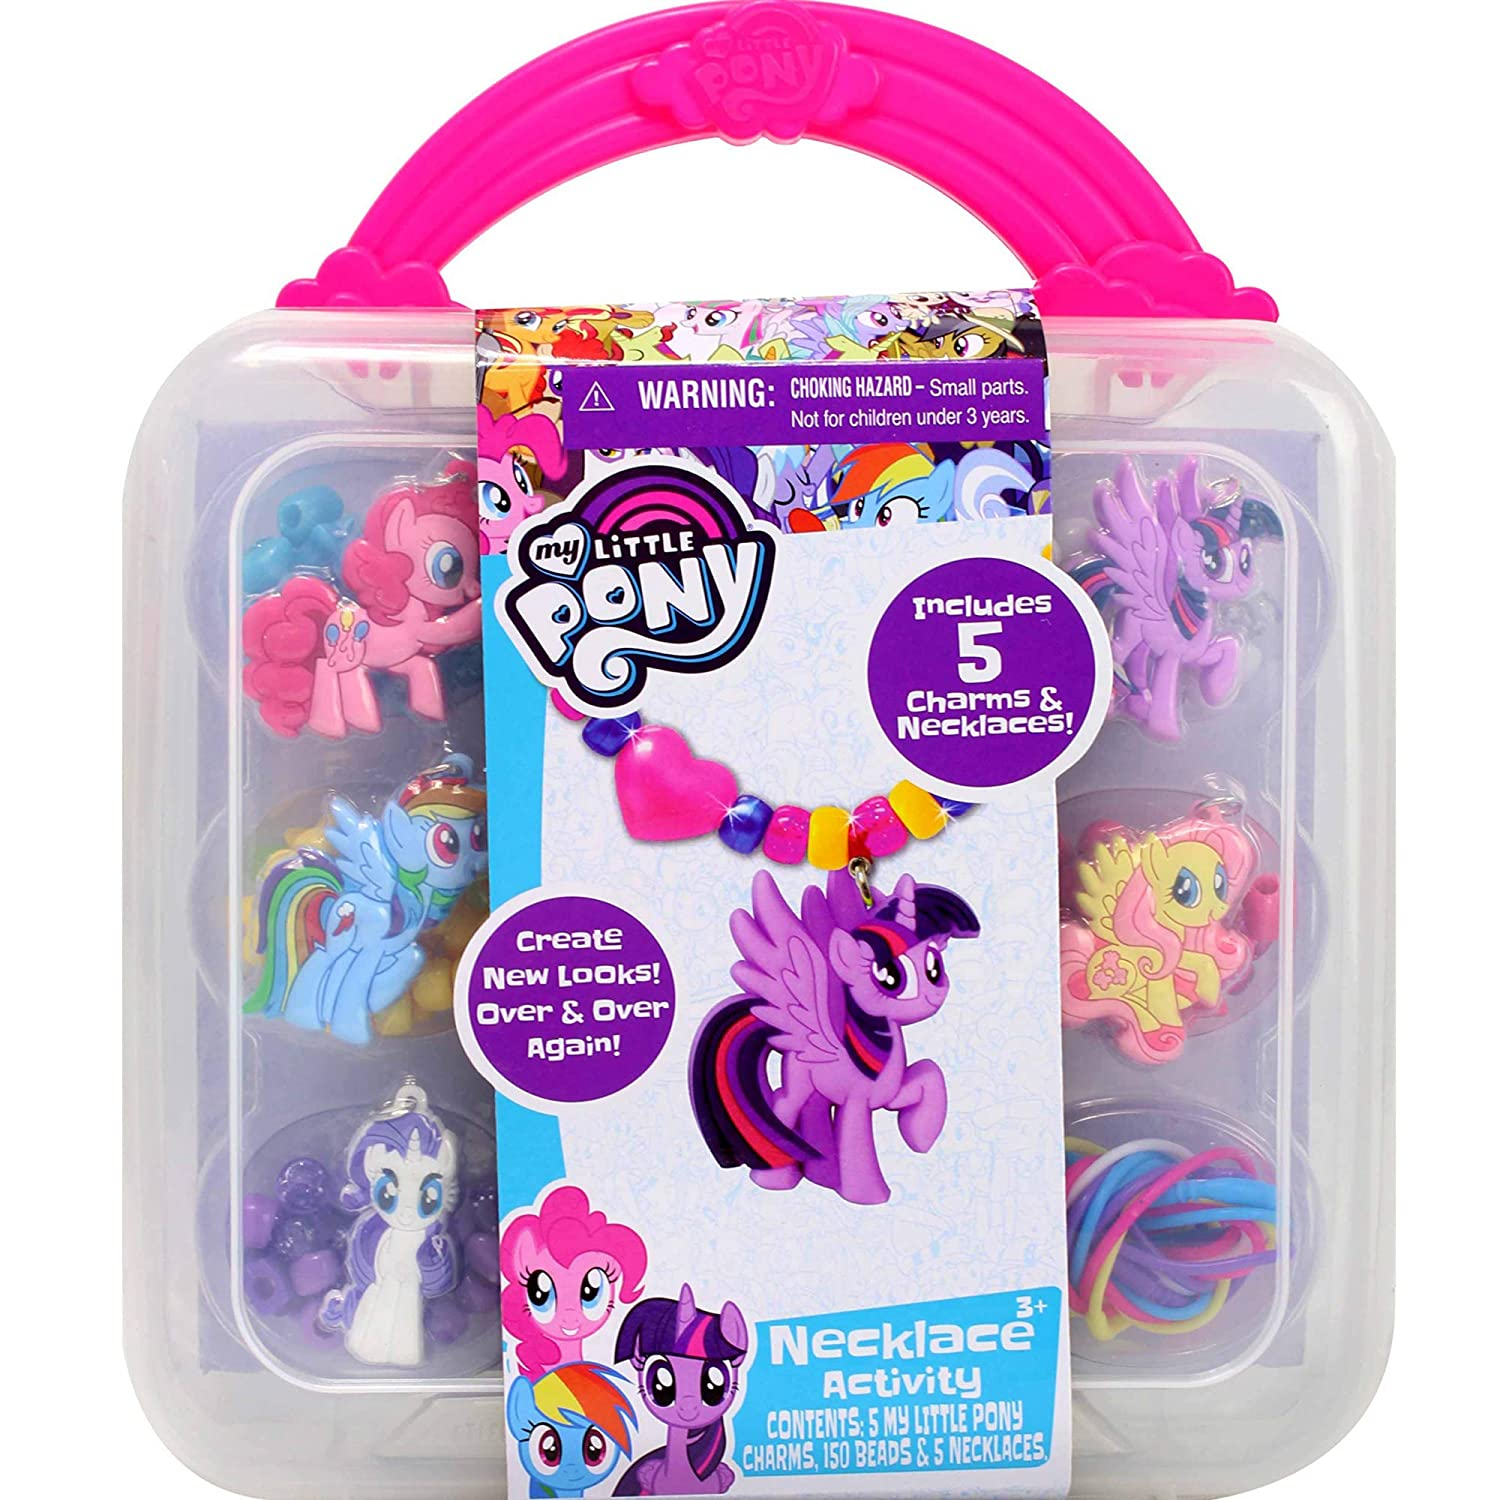 Top 11 Best My Little Pony Toys Reviews in 2019 4